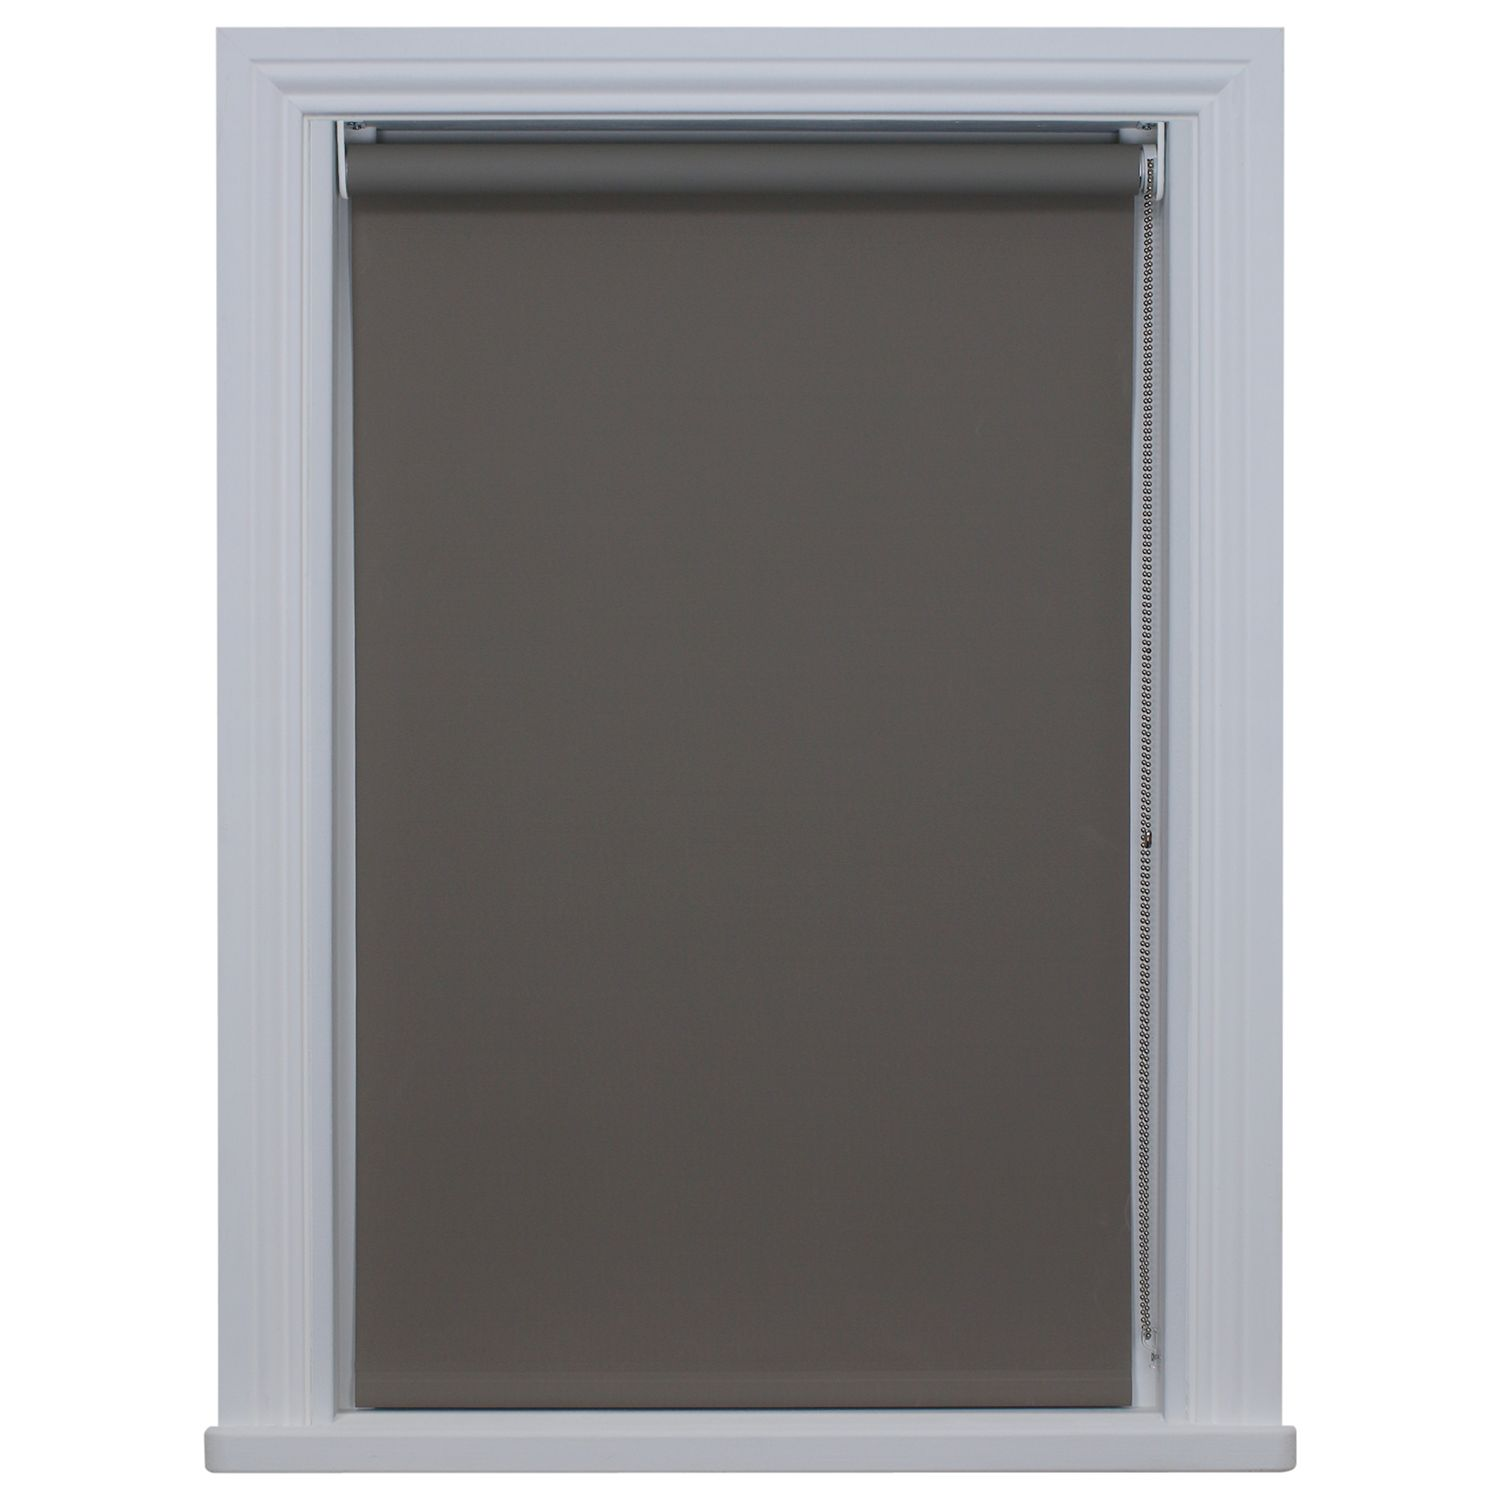 Bloc Blinds Bloc Made to Measure Fabric Changer Blackout Roller Blind